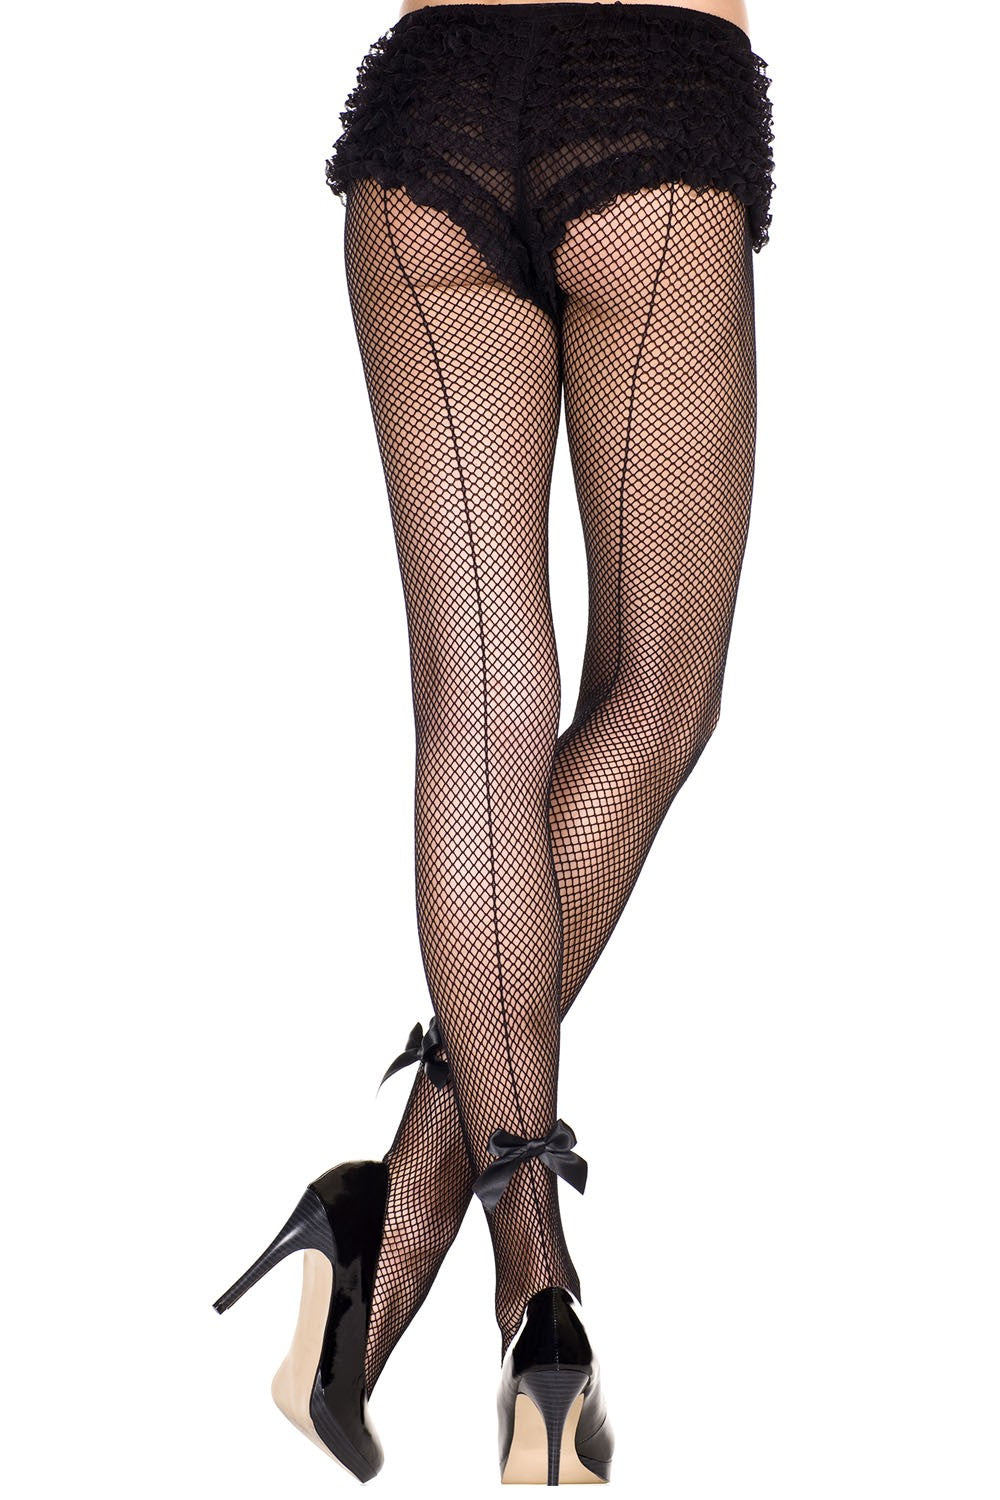 Music Legs 925 Fishnet Back Seam Pantyhose with Satin Bow